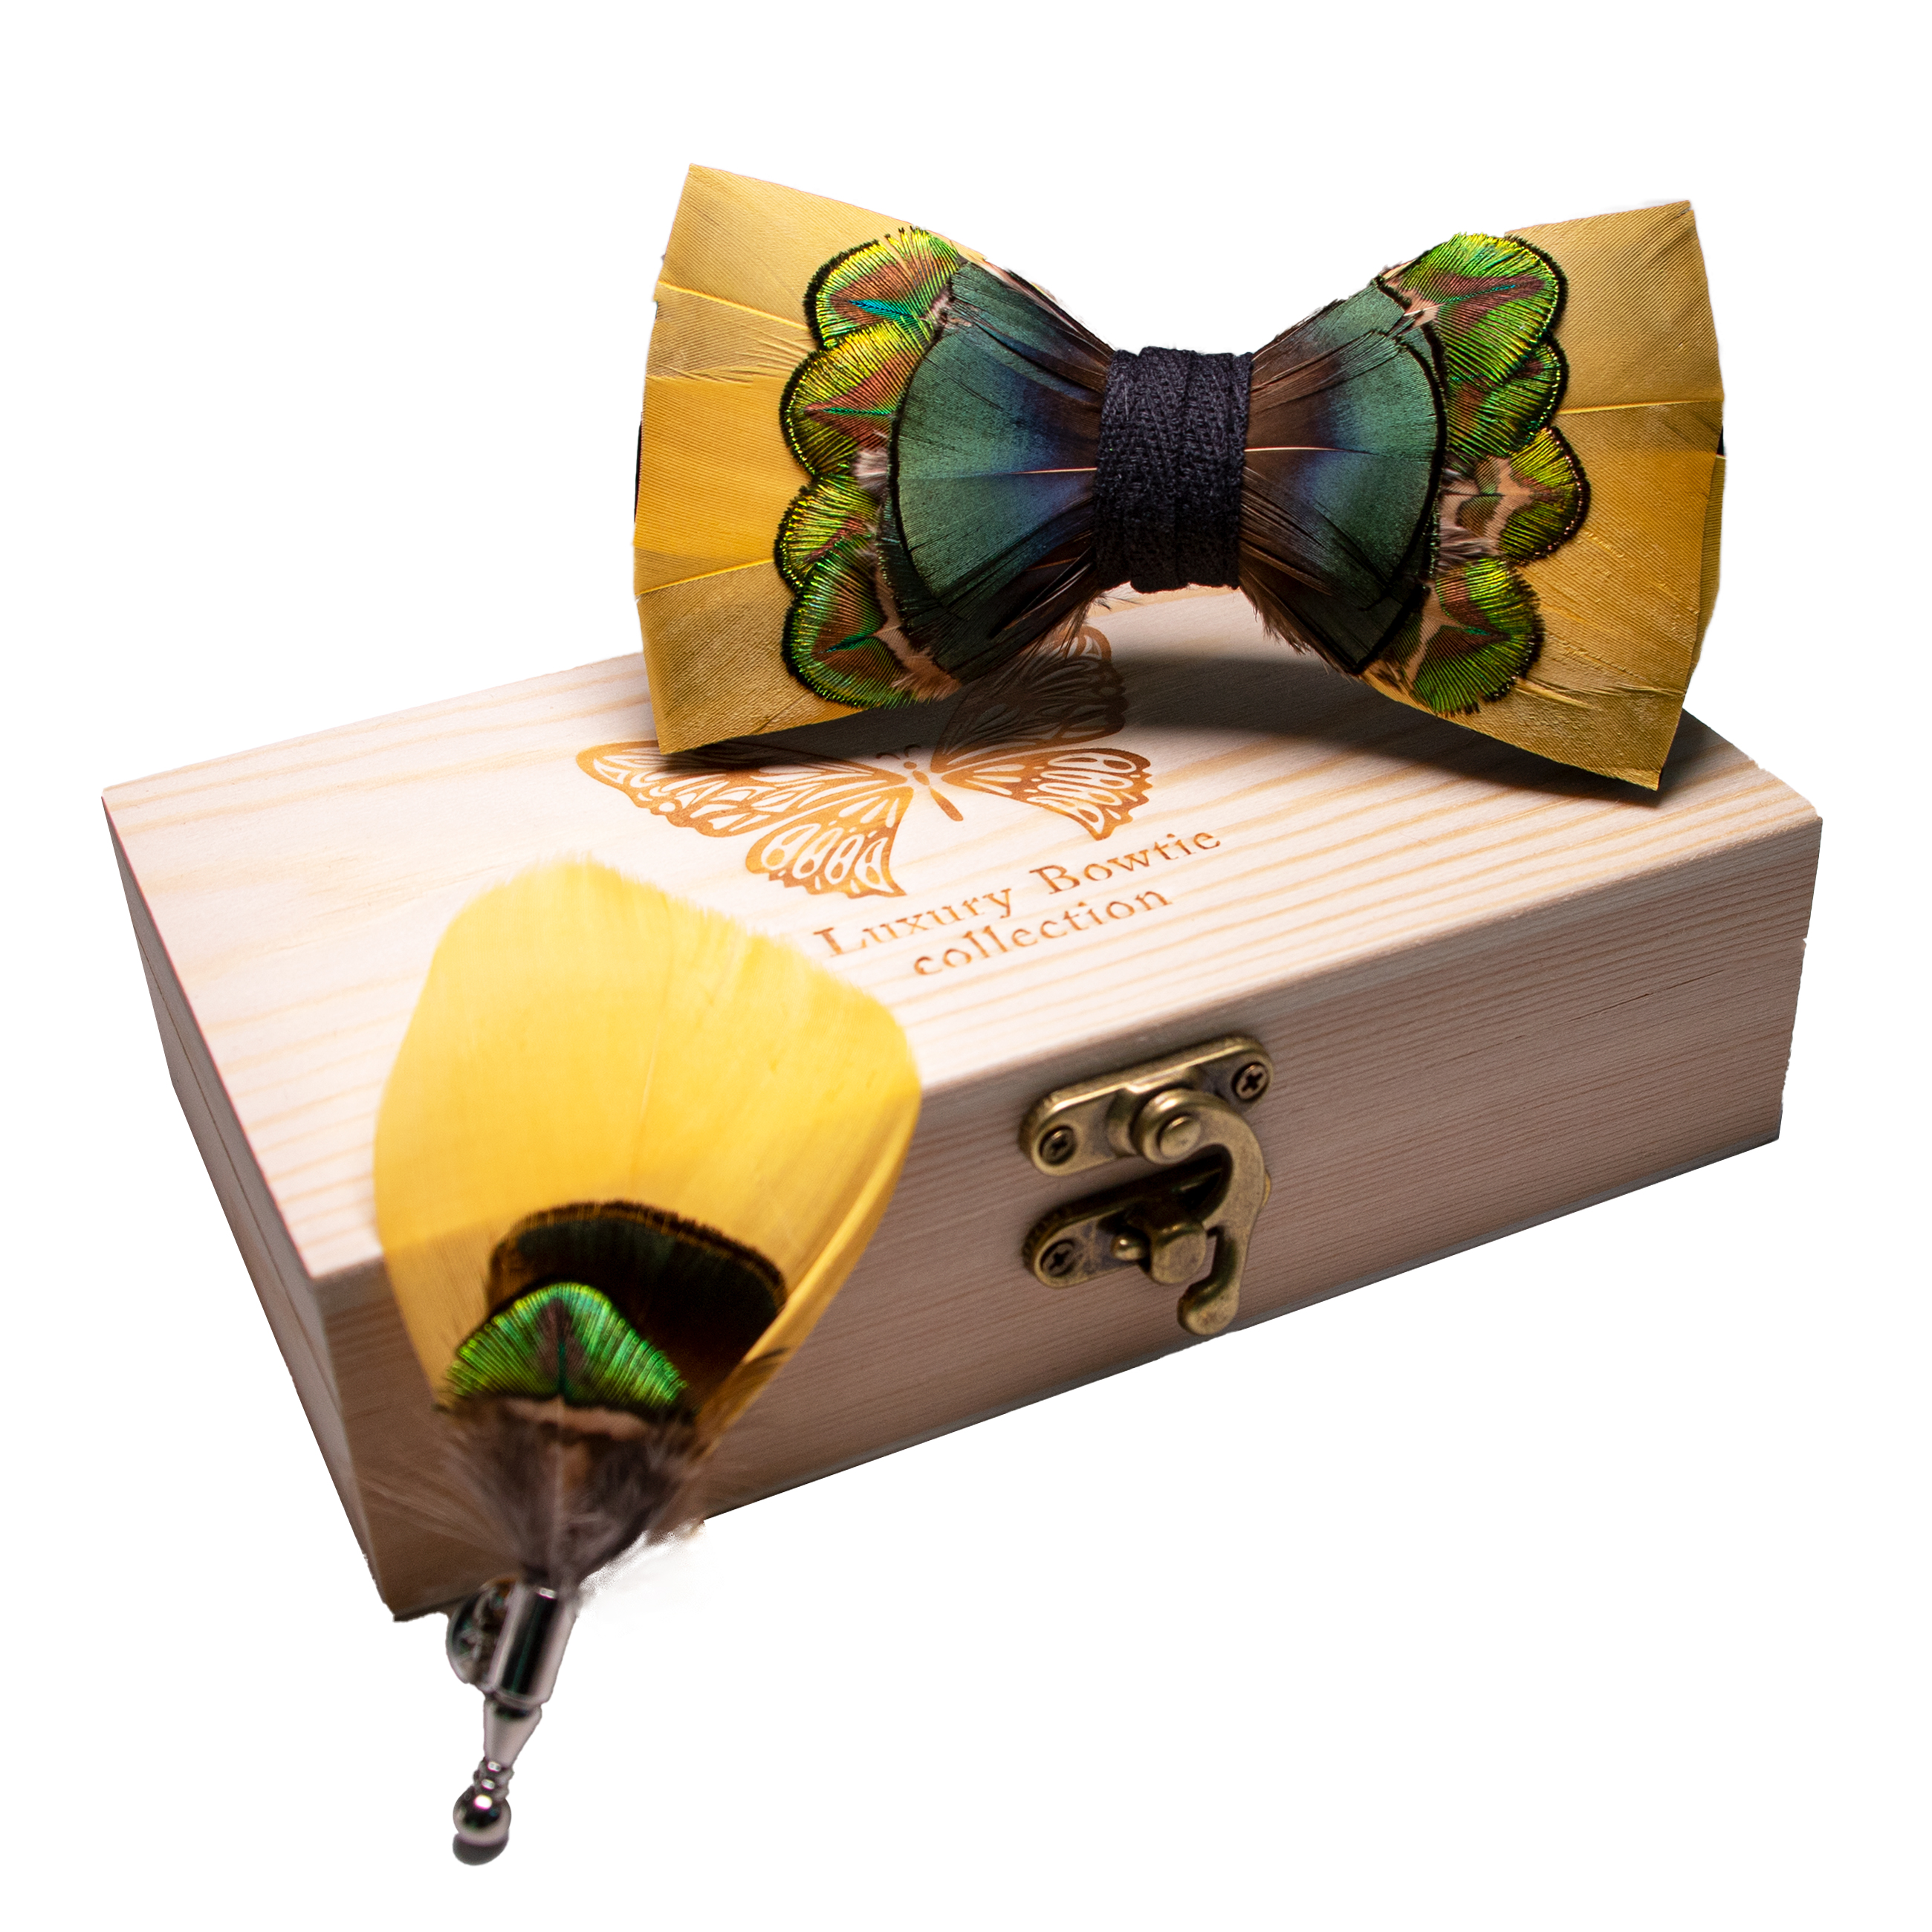 JEMYGINS 2019 New Original Design Bow Tie Orange Feather Bow Men's Bow Tie Brooch Wooden Box Carton Set Wedding Party Gift